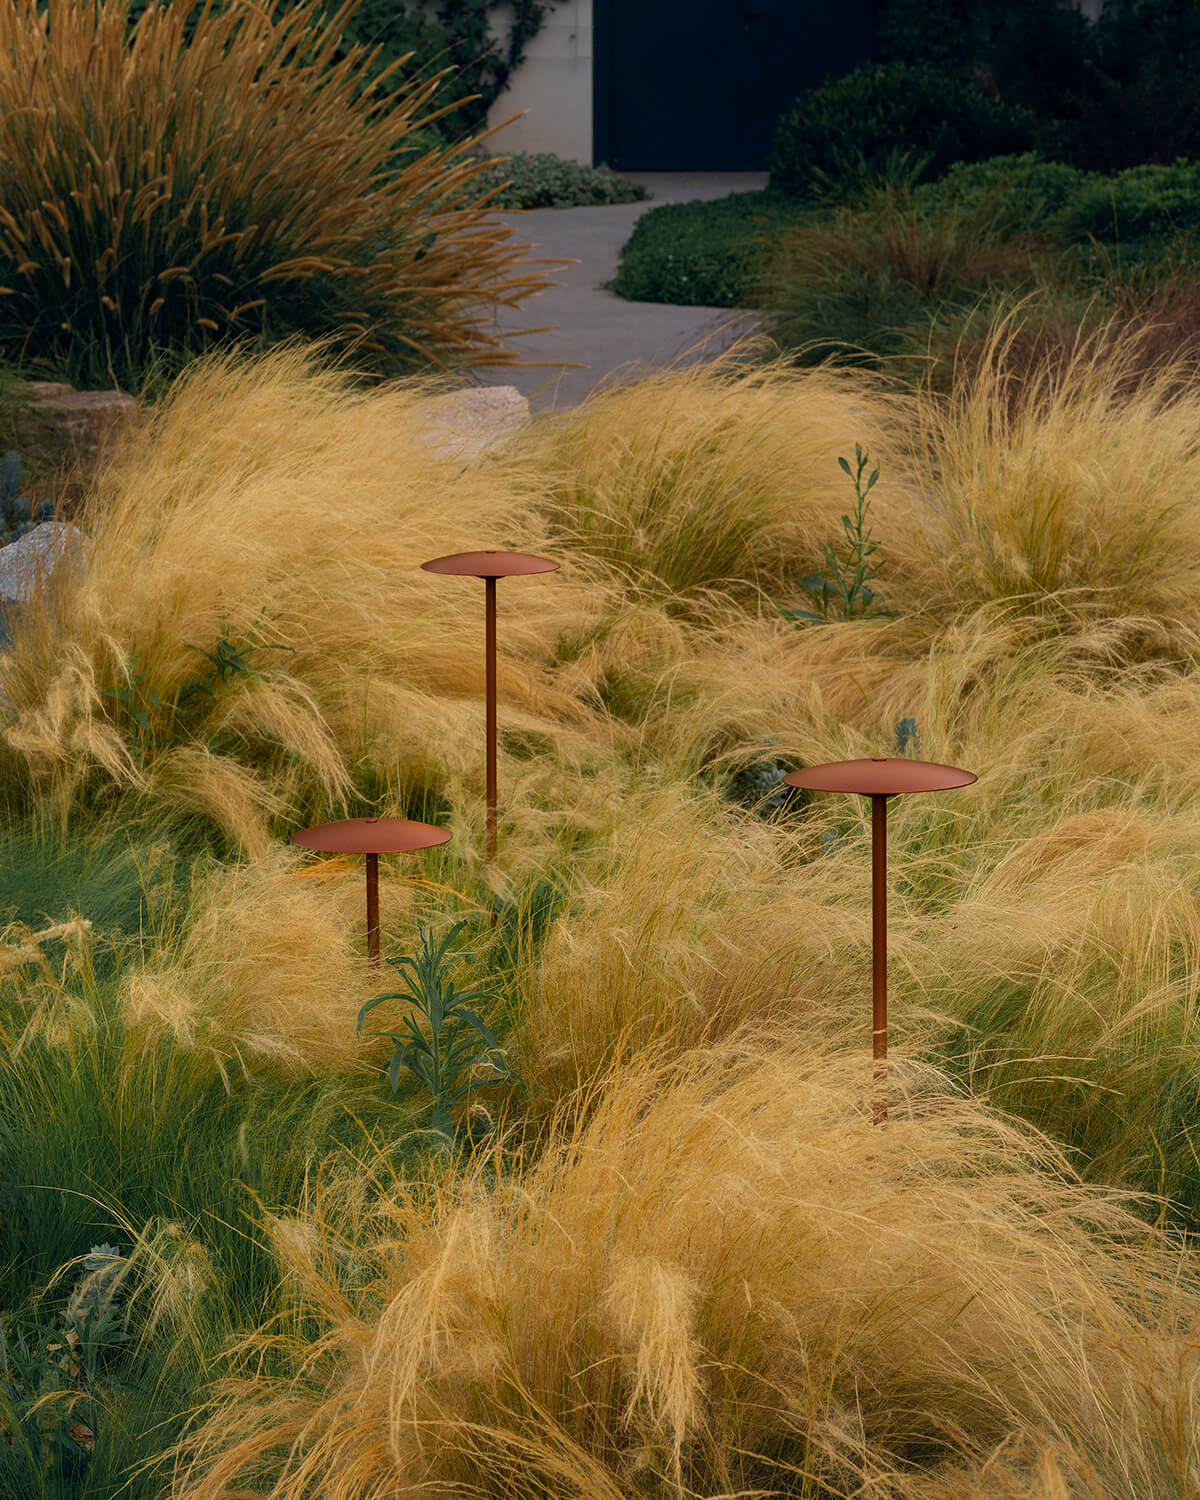 Three Ginger Bollard lamps arranged in a cluster in a patch of tall grass